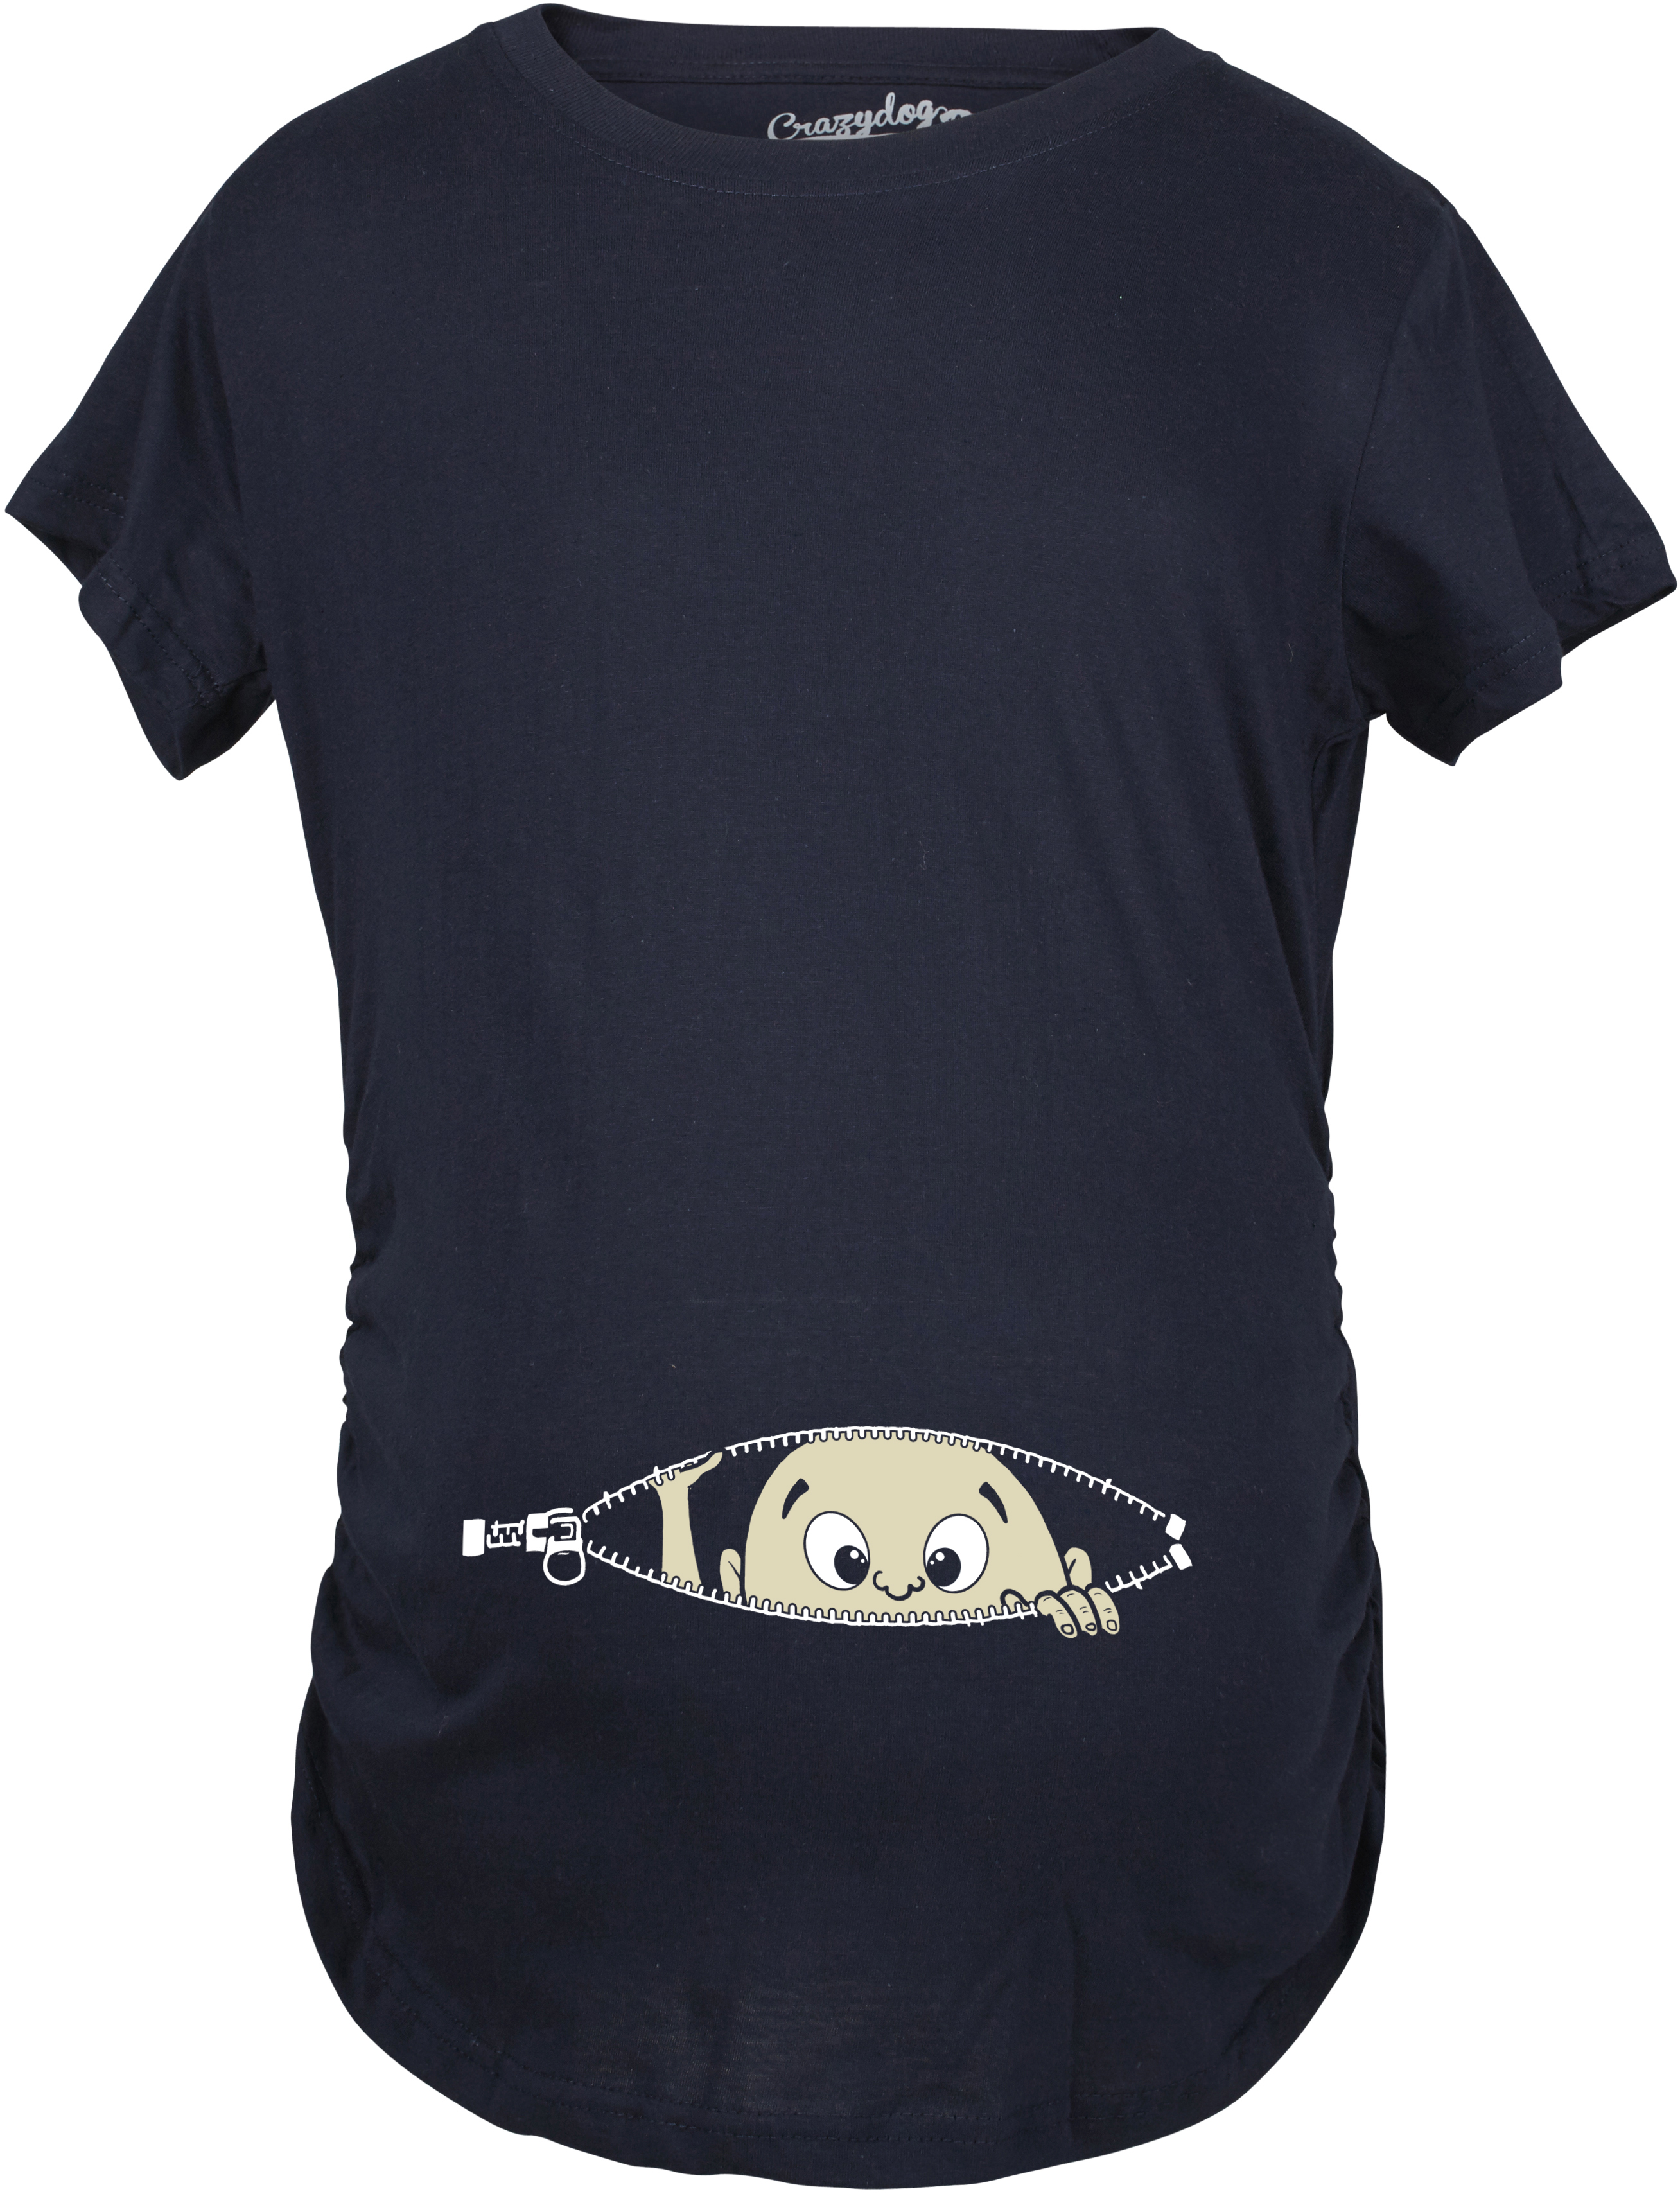 Funny pregnancy t shirts t shirt design database for Baby fishing shirts columbia